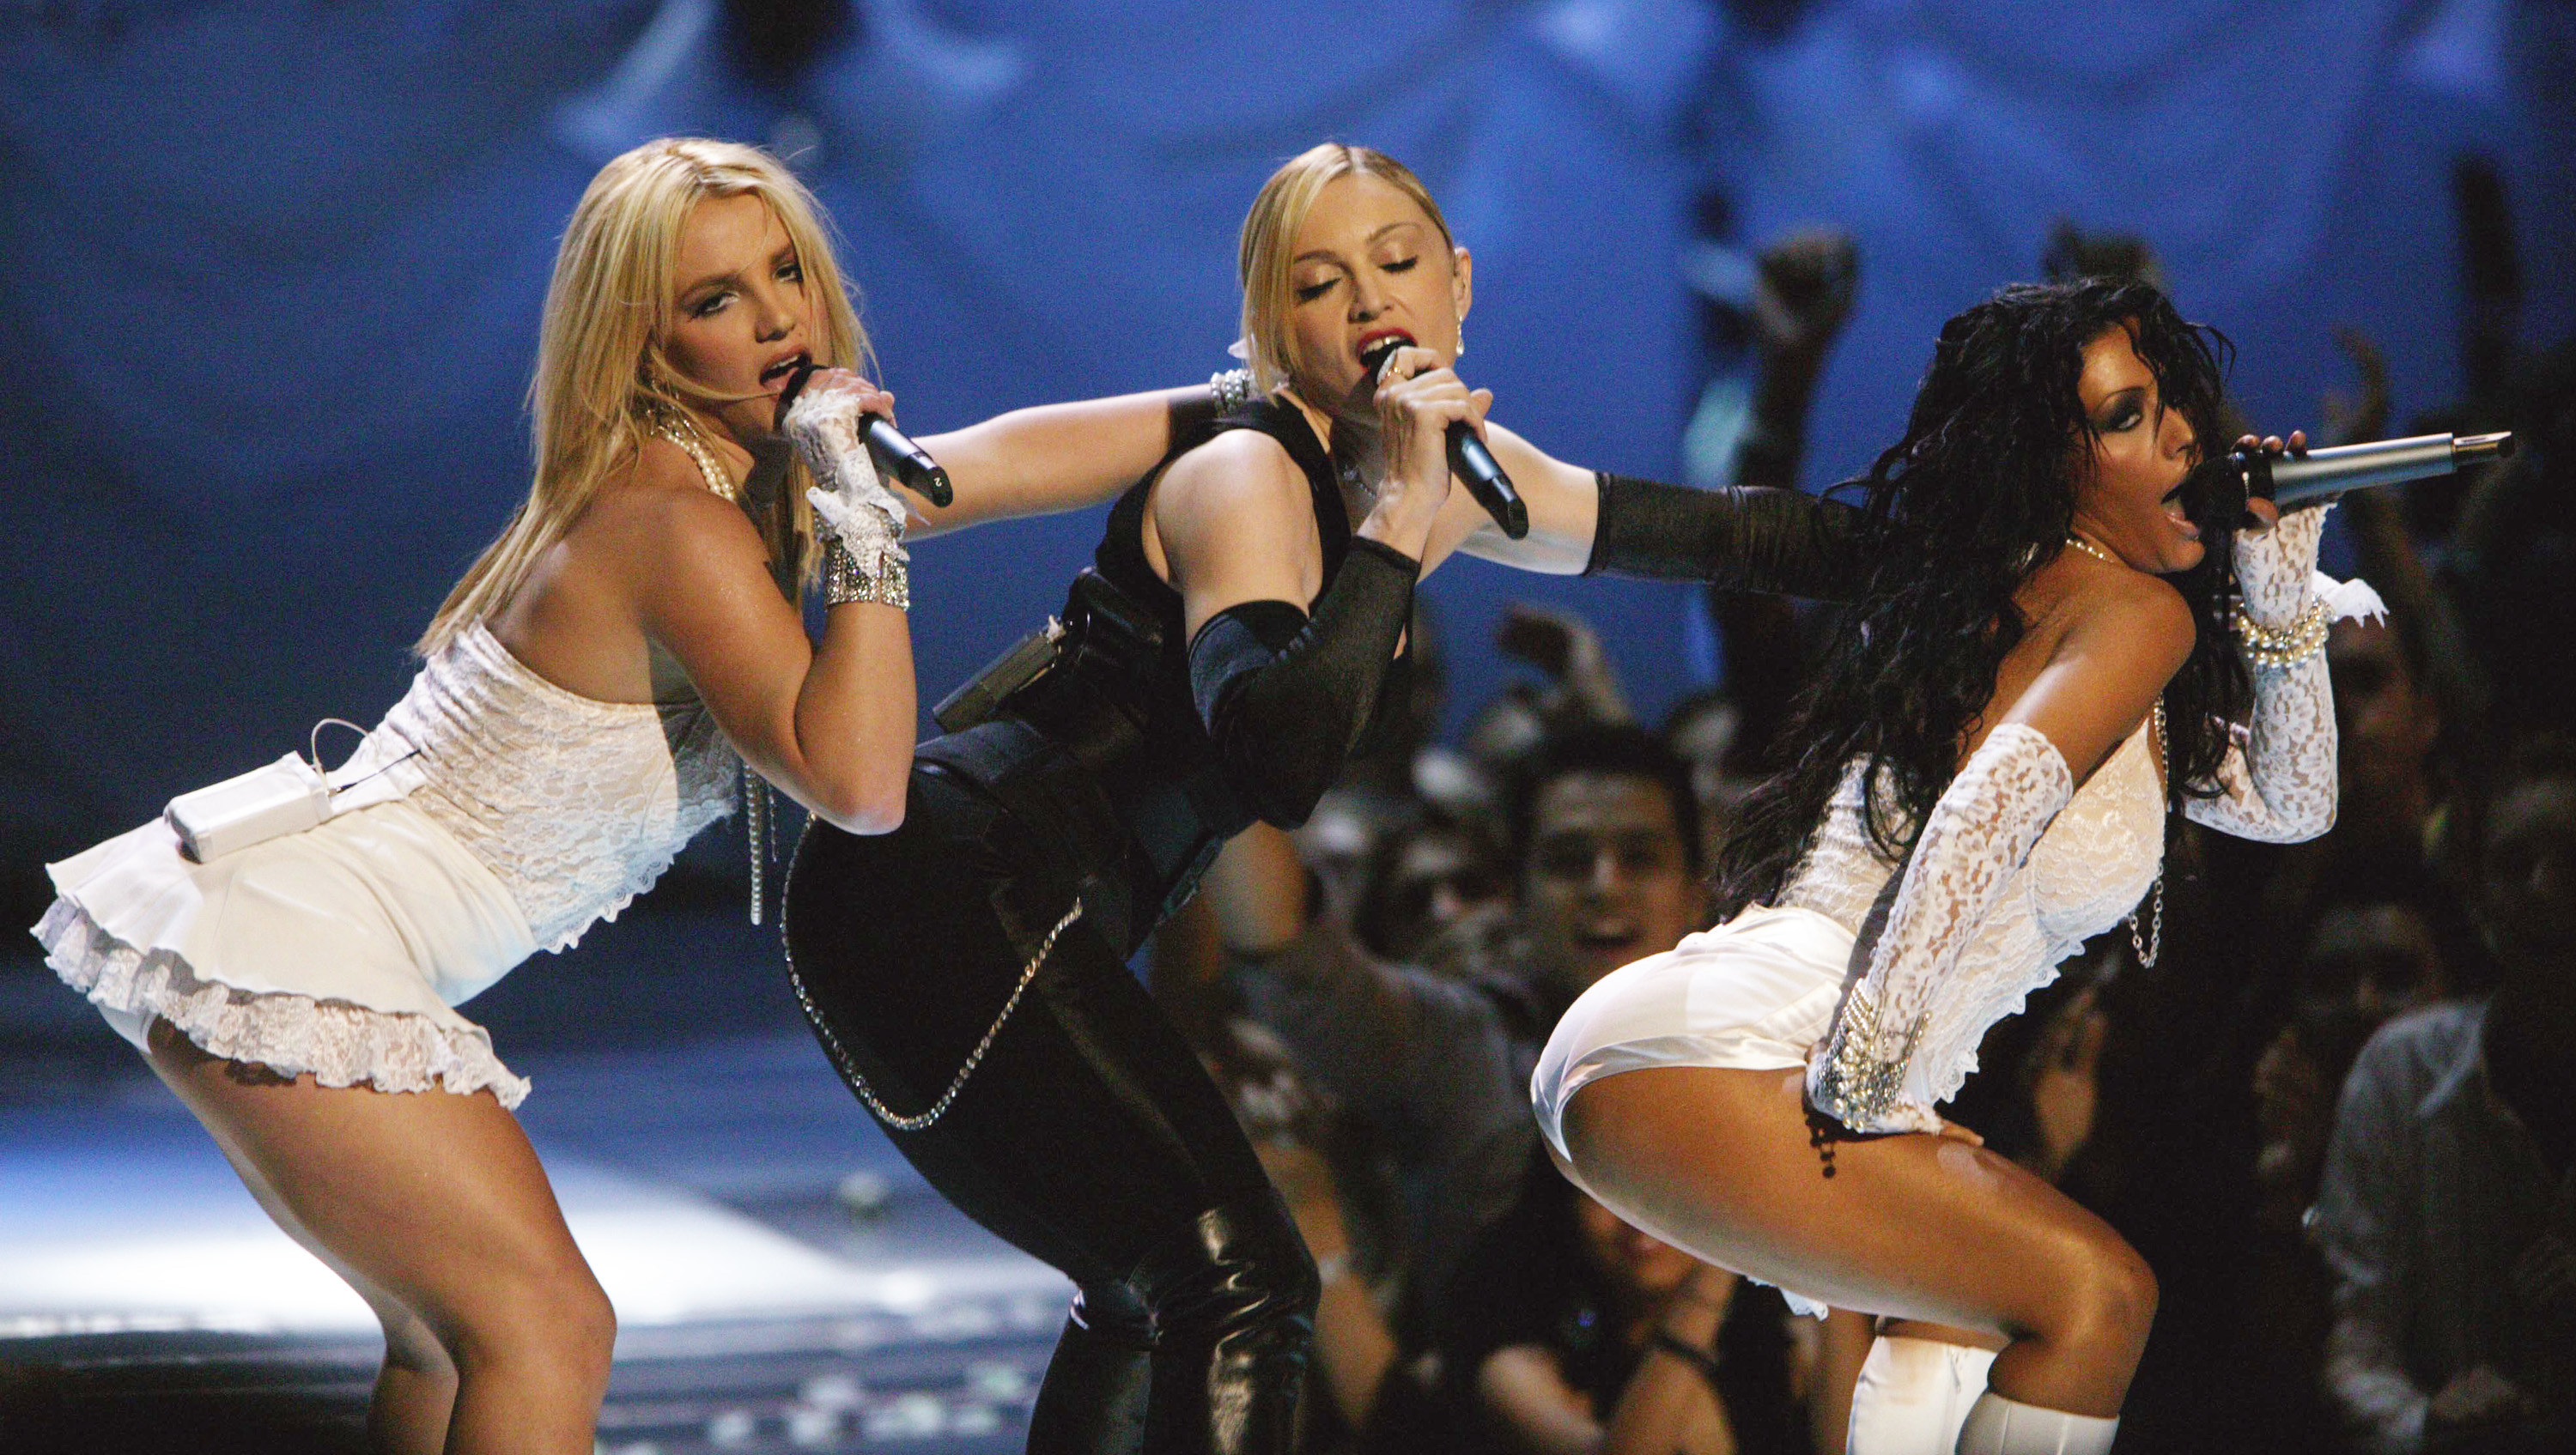 Britney Spears, Madonna, and Christina Aguilera perform next to each other onstage at the 2003 MTV Video Music Awards